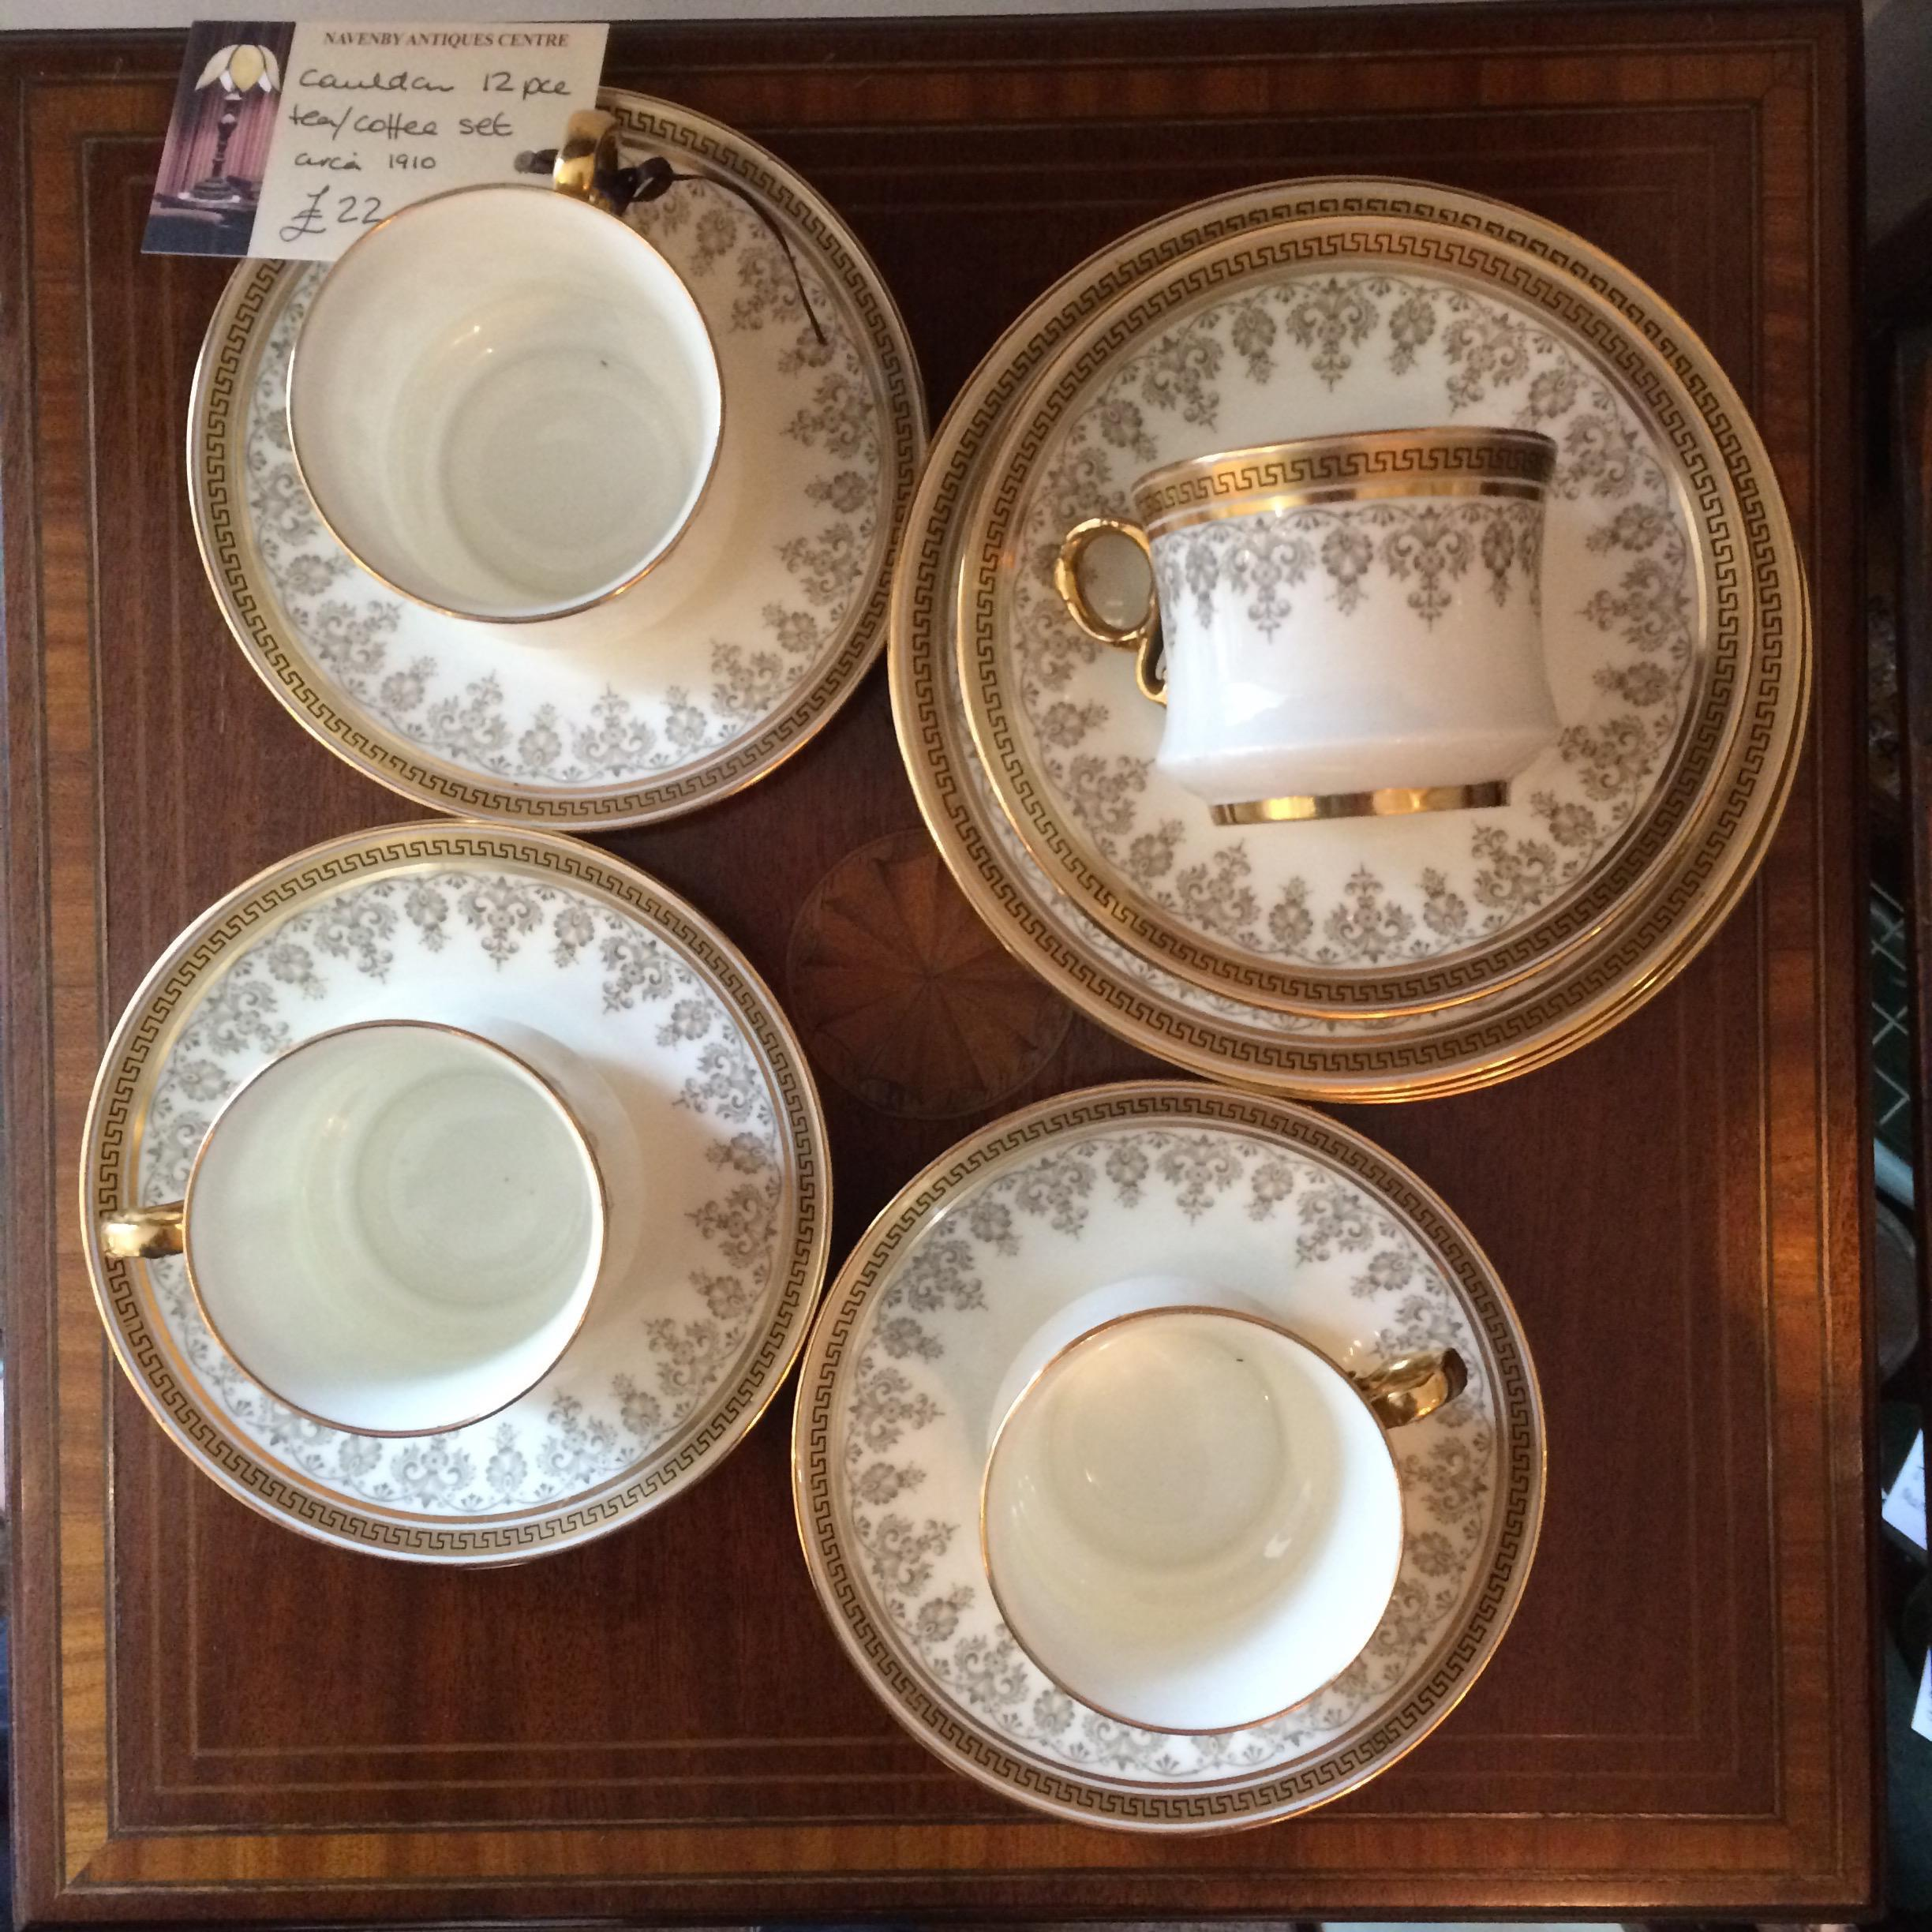 Cauldon Tea/Coffee Set